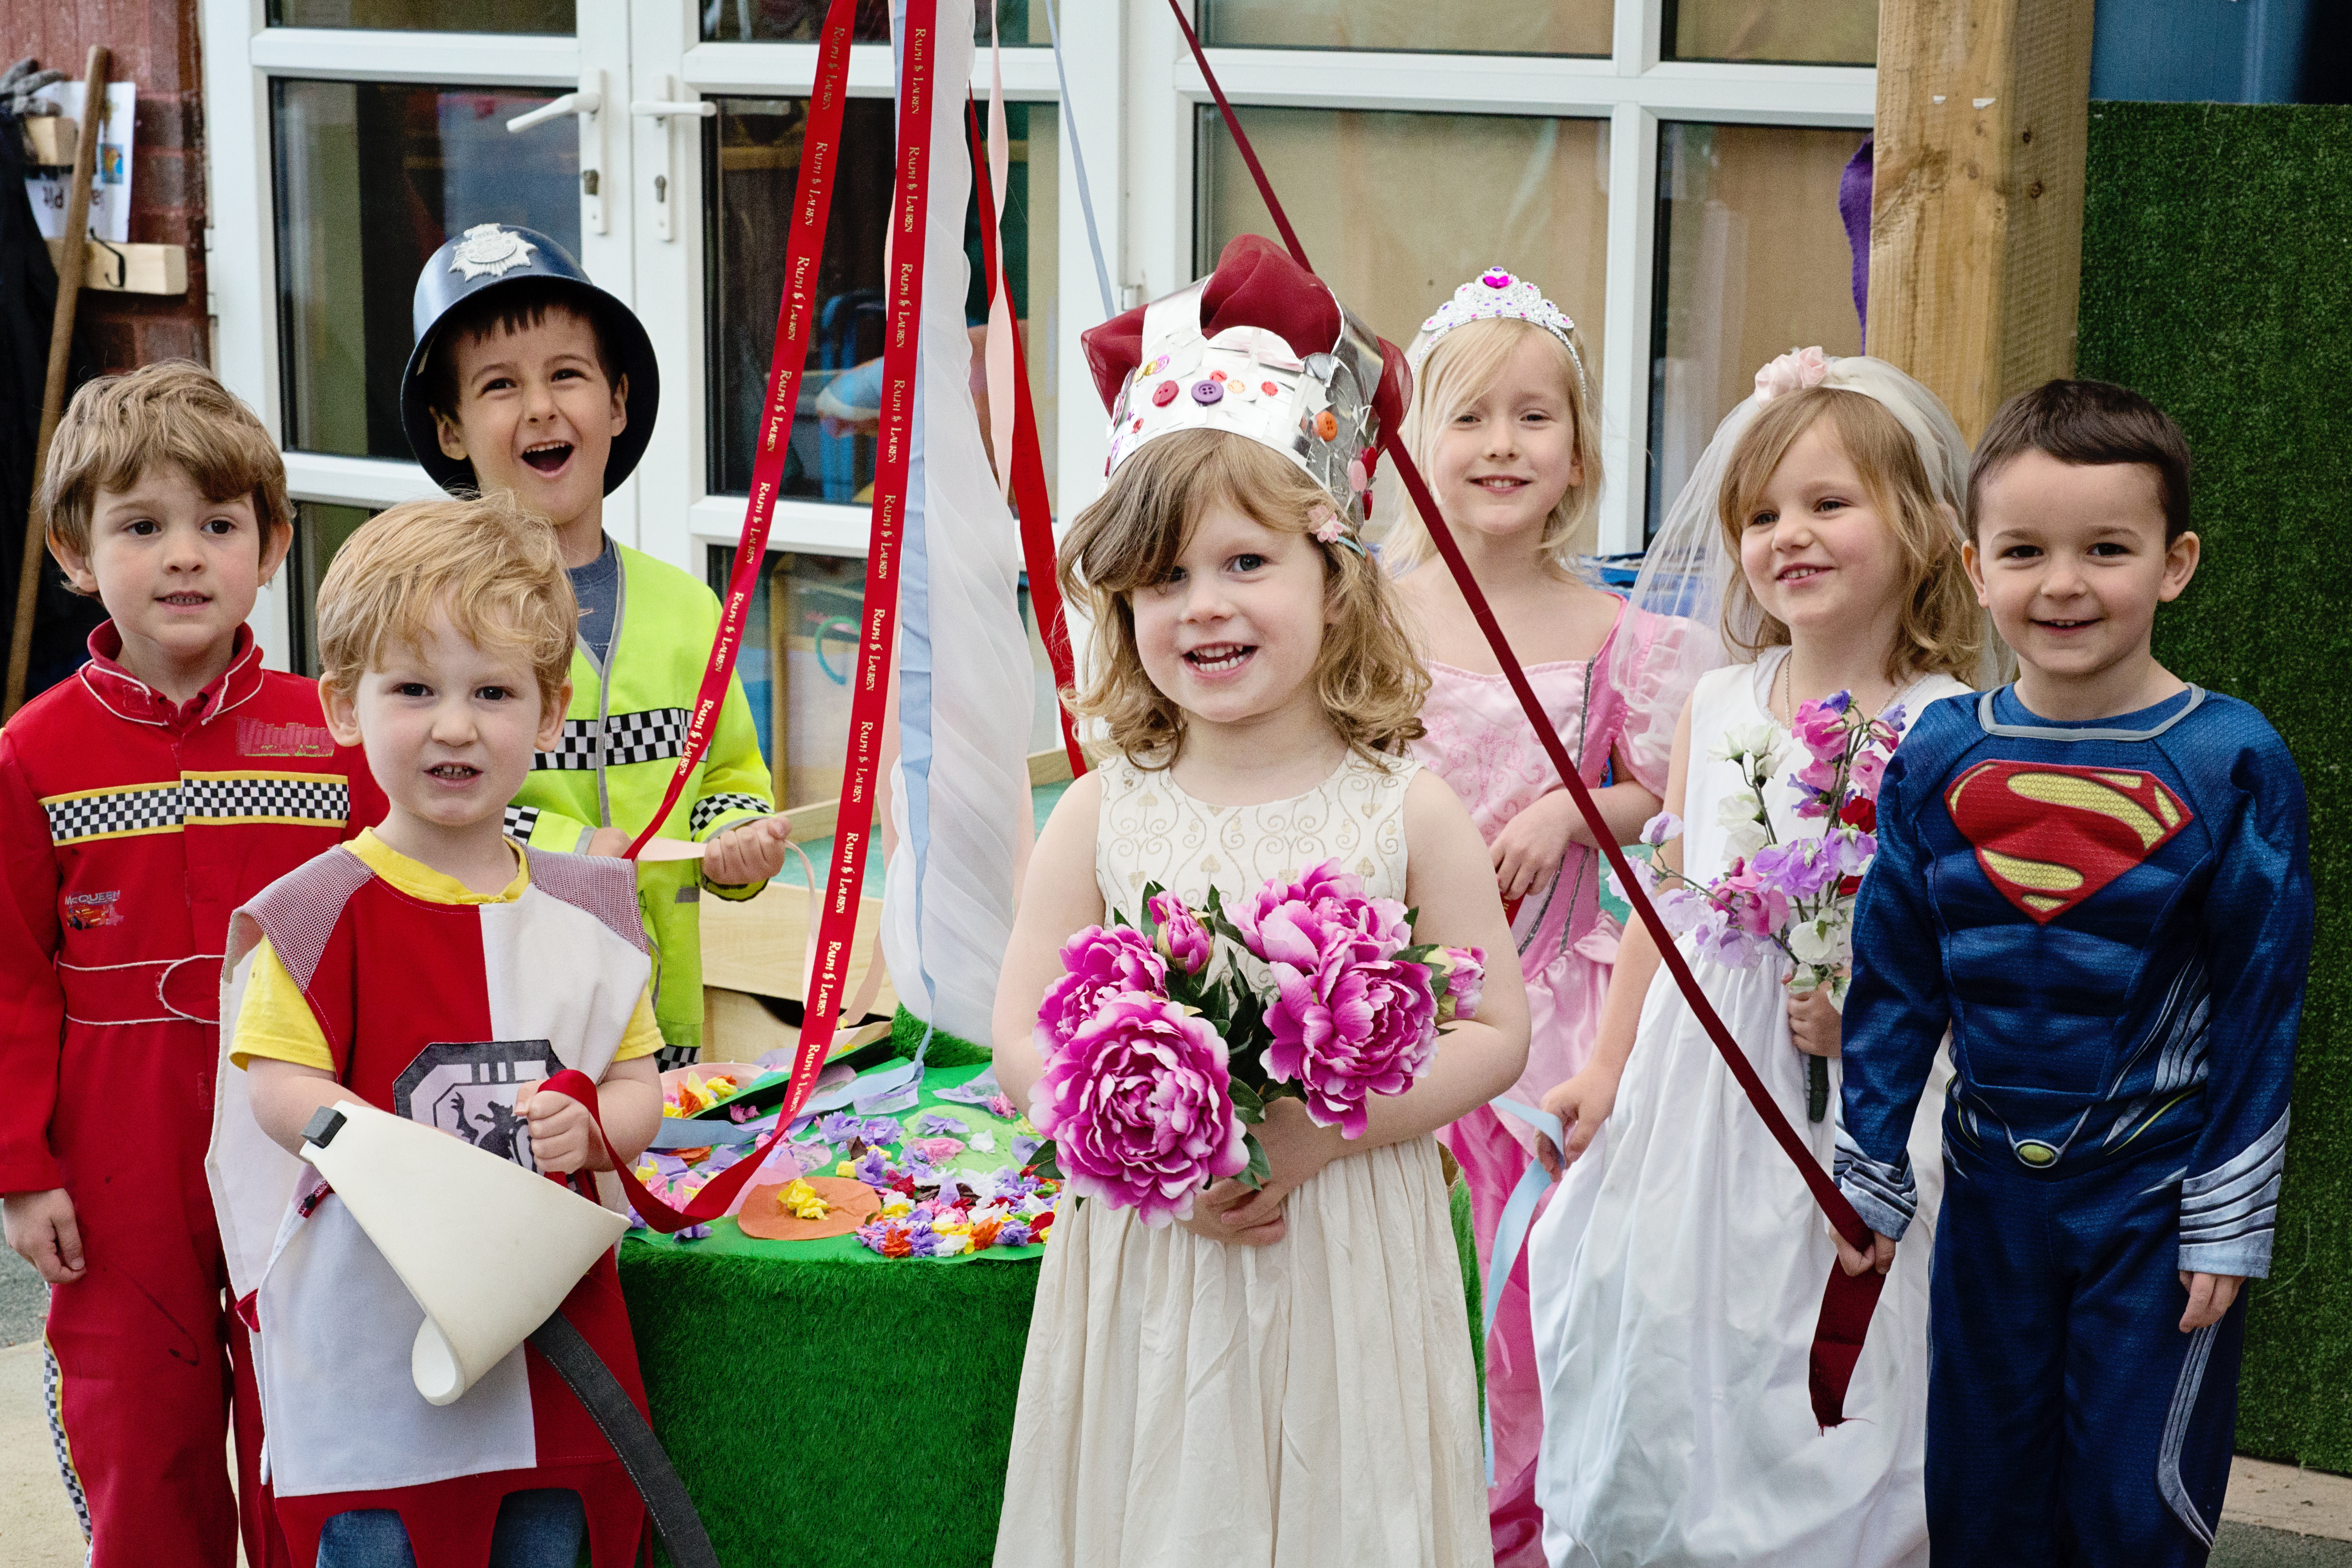 Children at Egerton Pre-School Knutsford celebrate May Day with their own procession and maypole dancing.